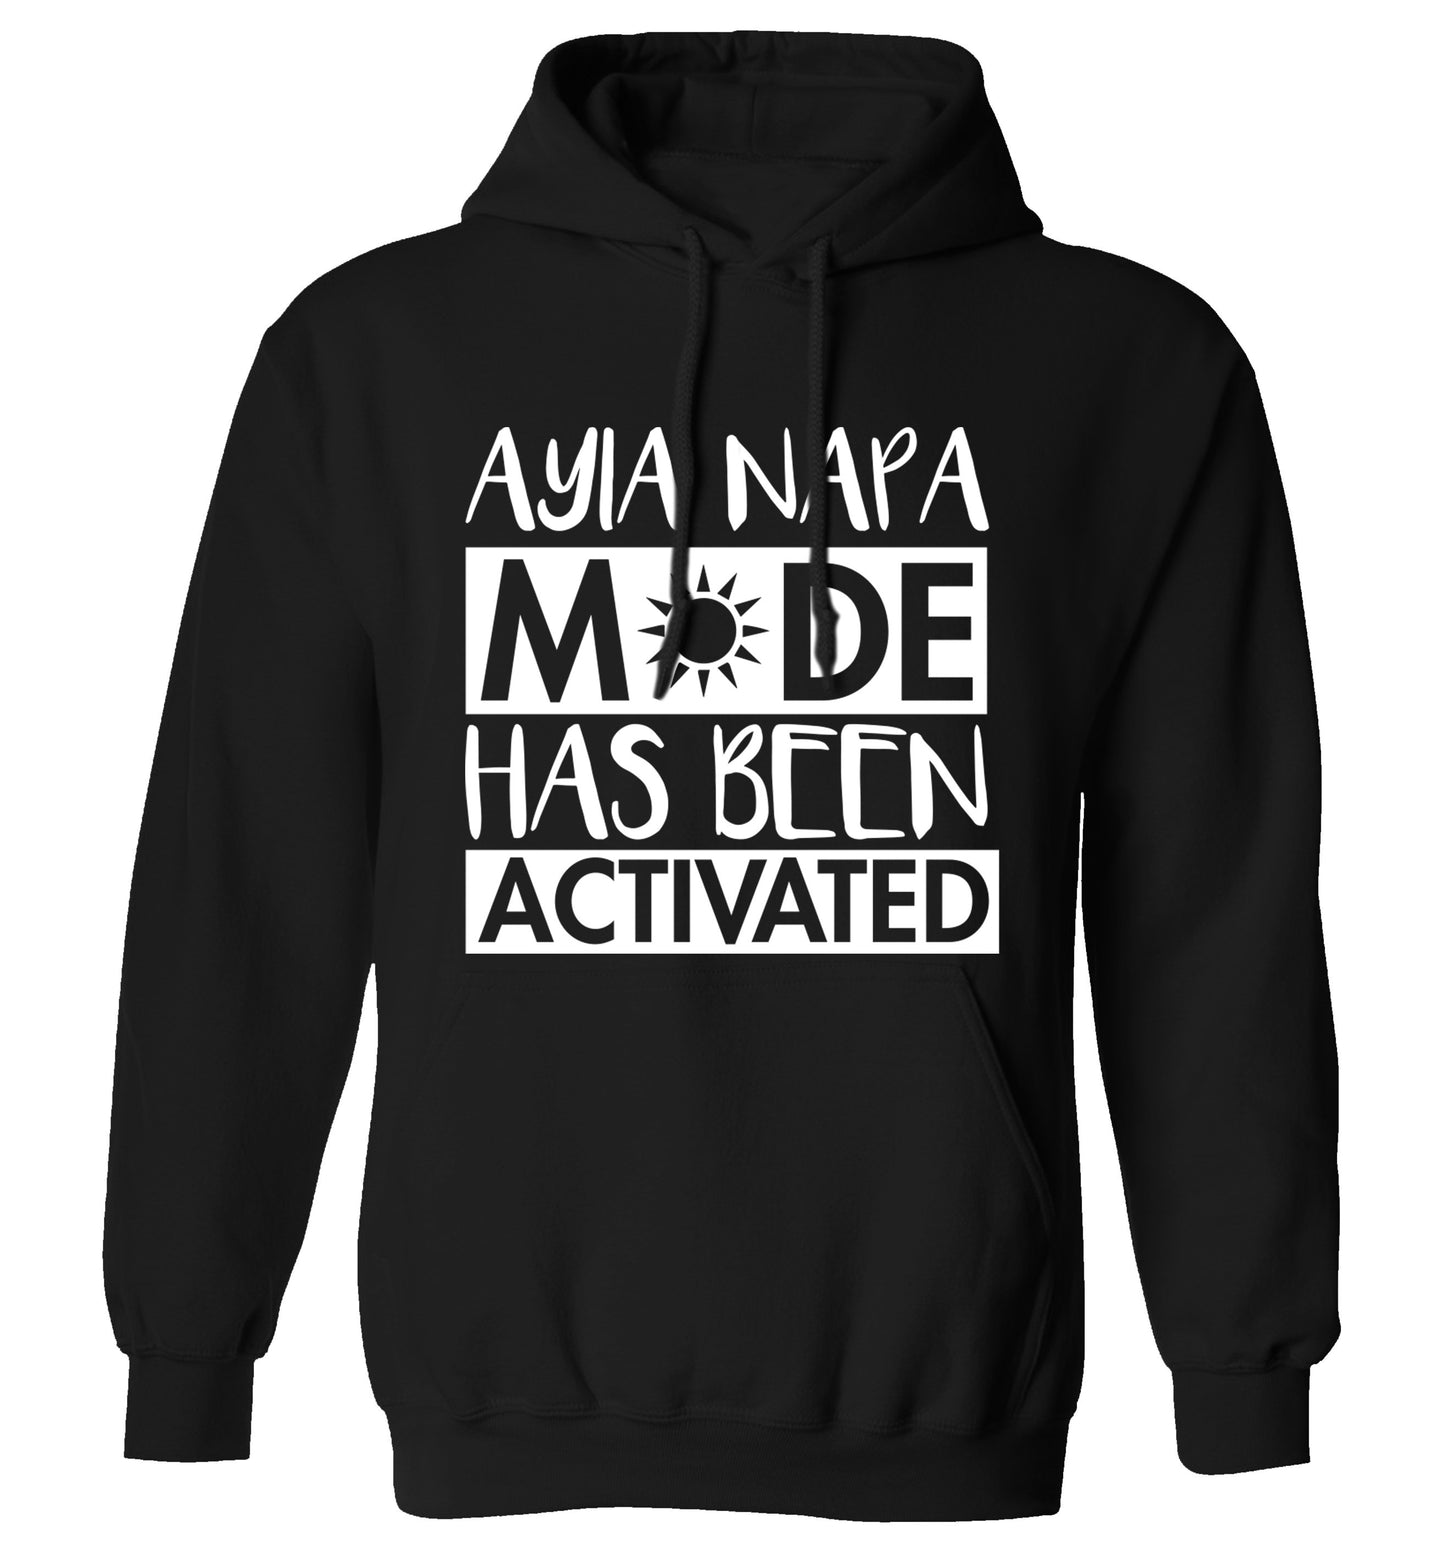 Aiya Napa mode has been activated adults unisex black hoodie 2XL